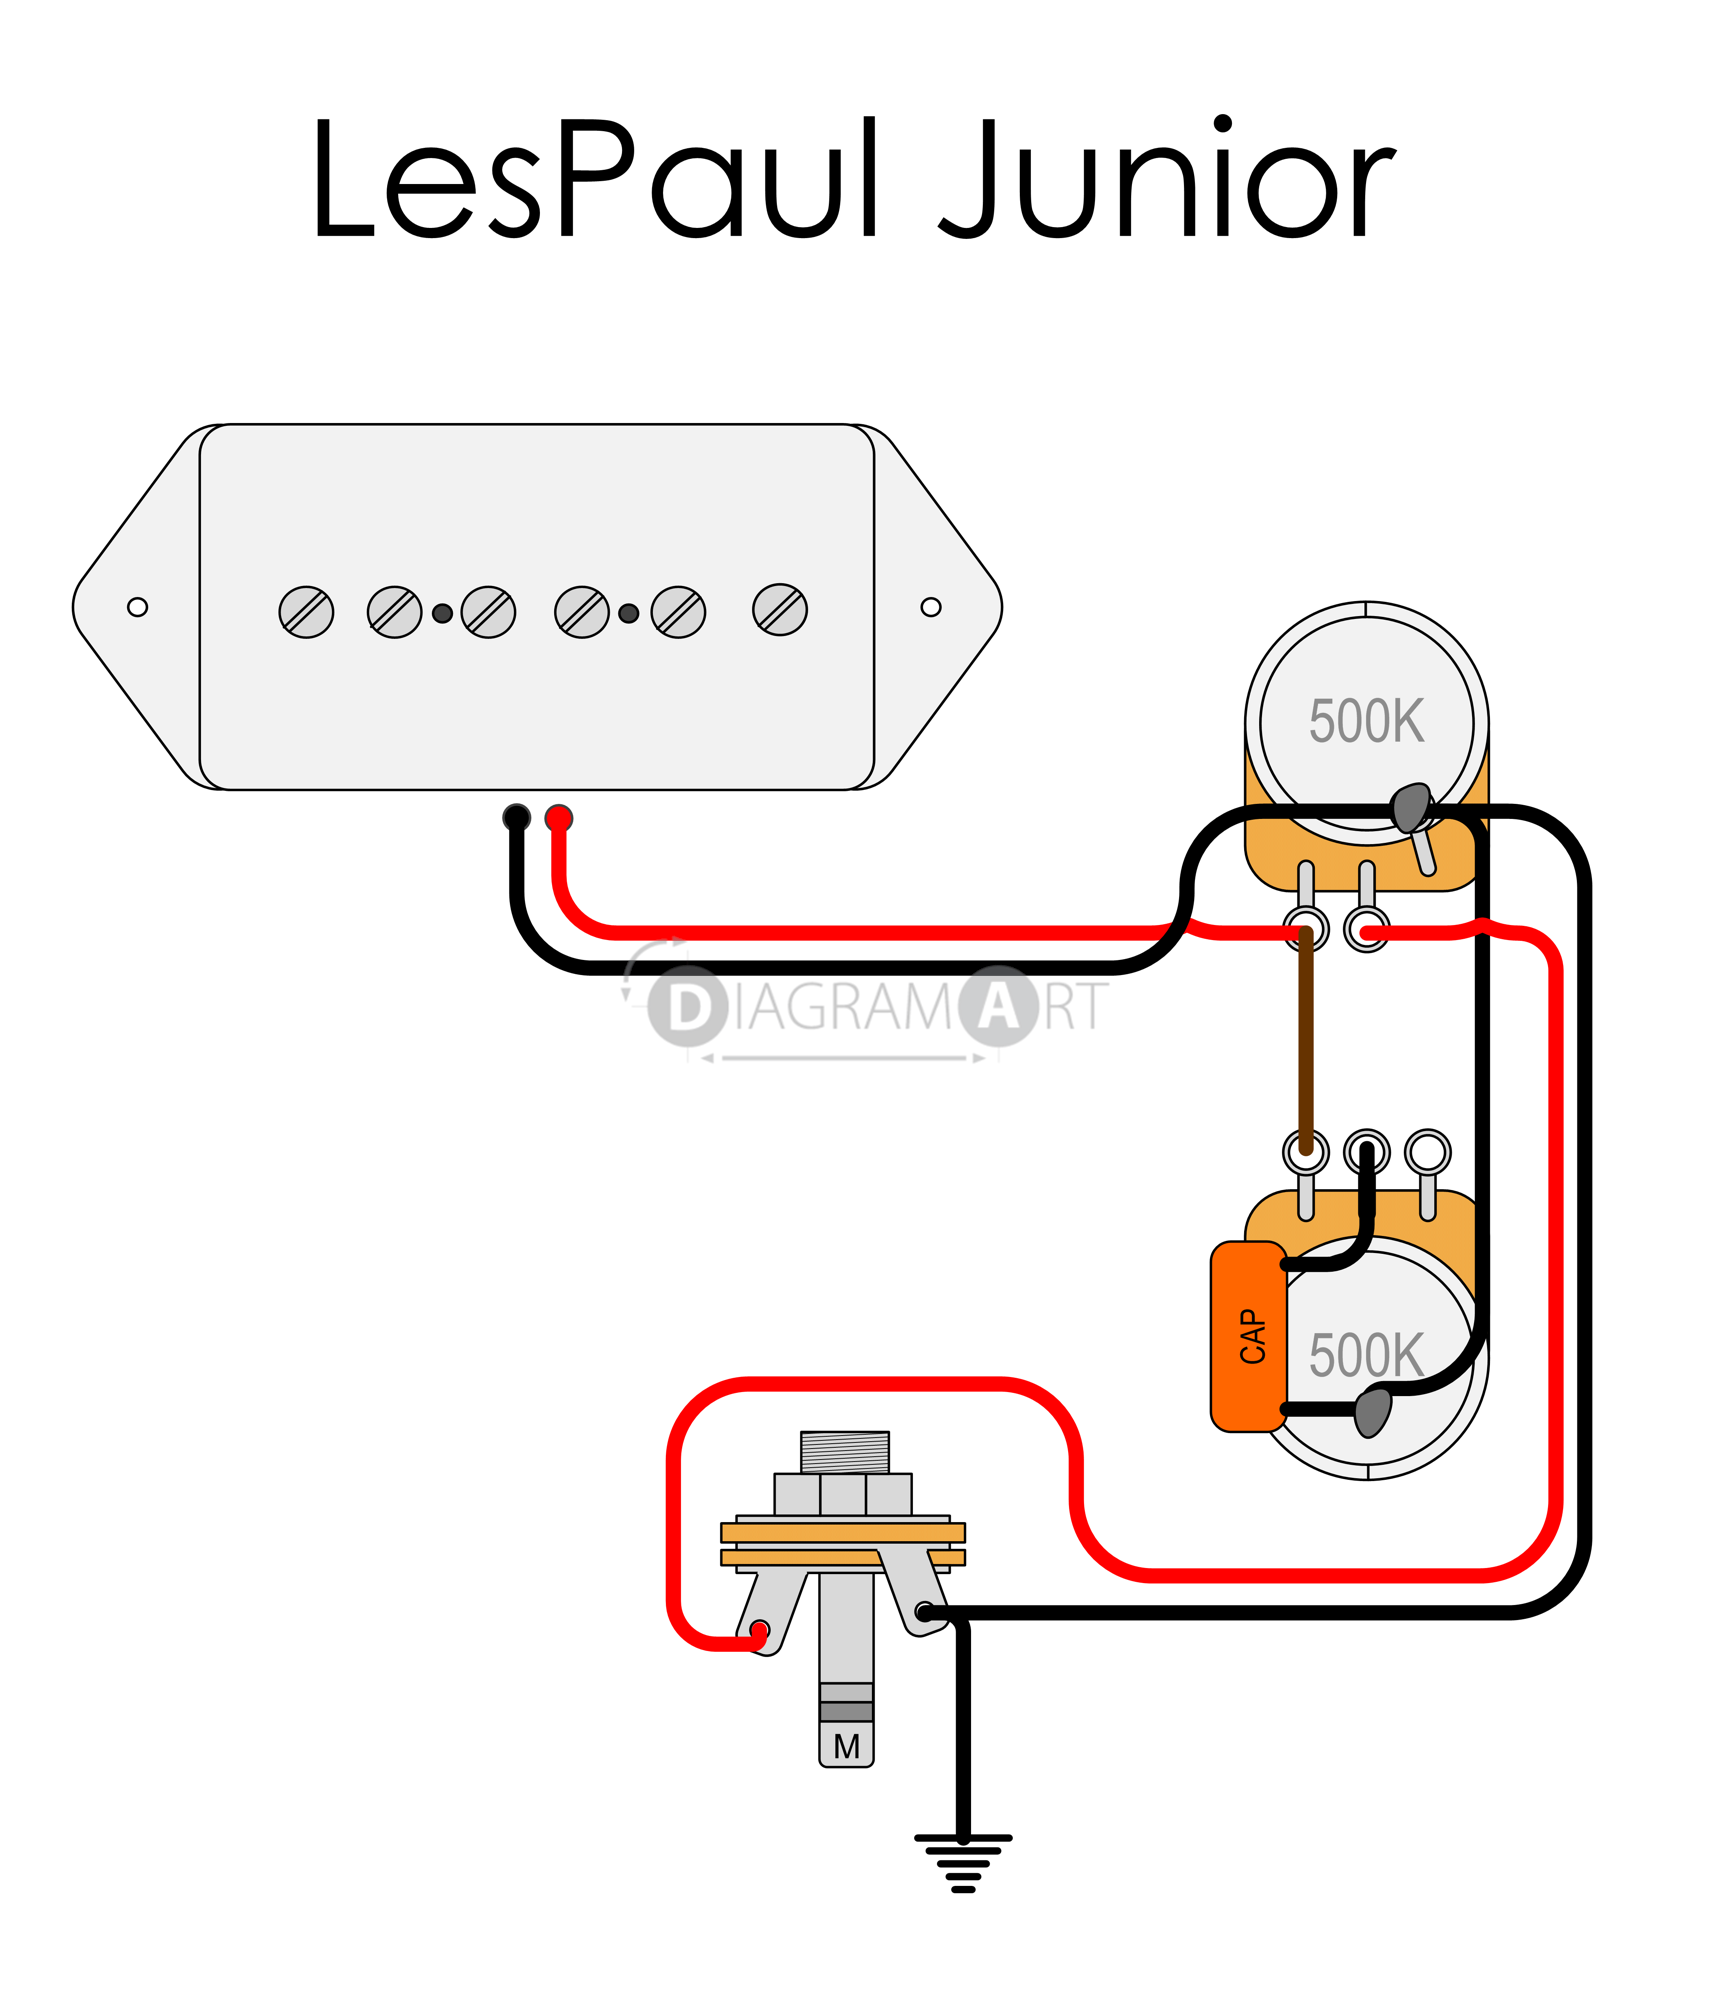 New Epiphone Electric Guitar Wiring Diagram Diagram Diagramsample Diagramtemplate Epiphone Les Paul Les Paul Epiphone